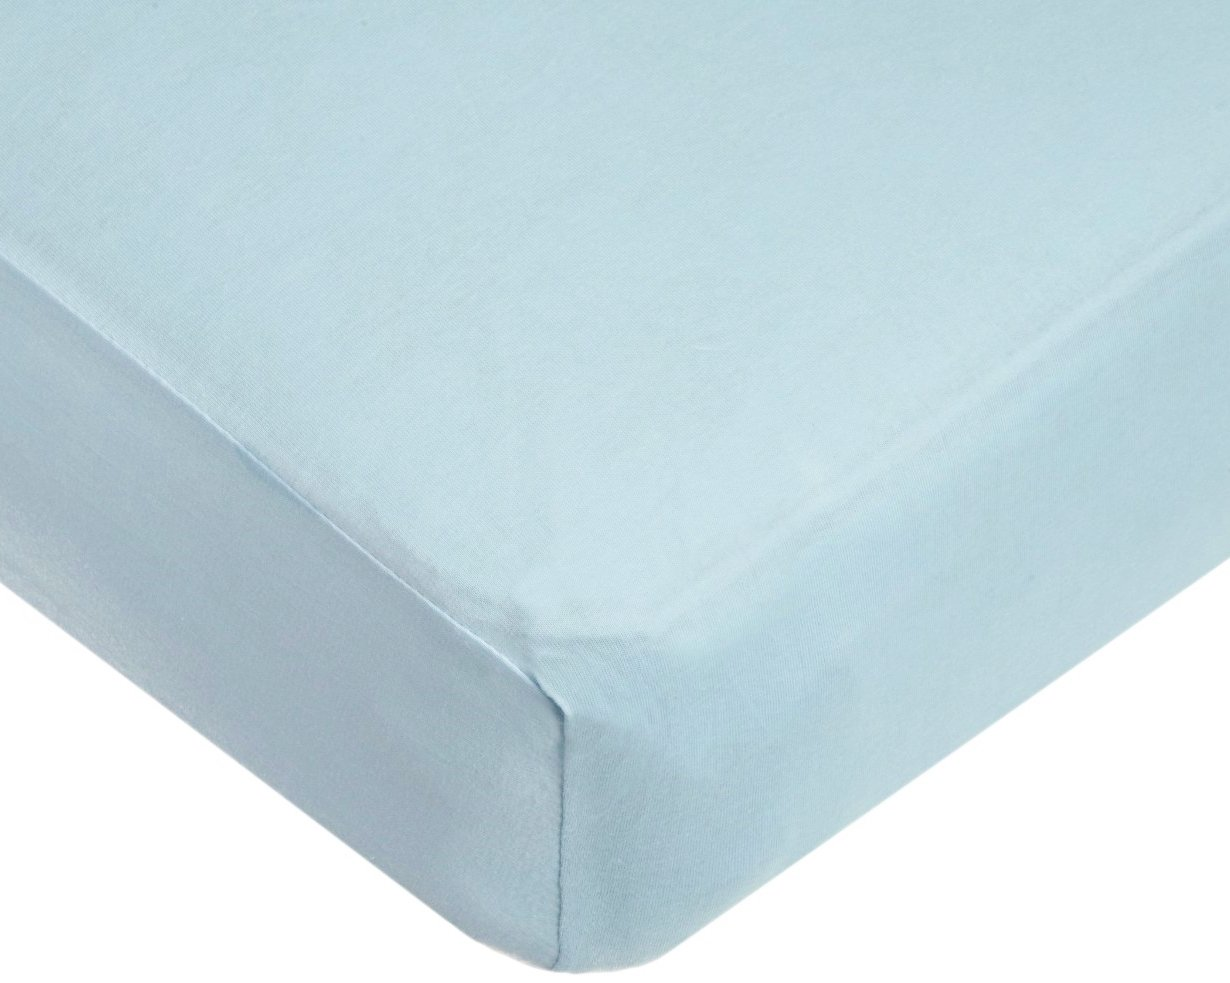 American Baby Company 100% Cotton Jersey Knit Fitted Crib Sheet for Standard Crib and Toddler Mattresses, Blue